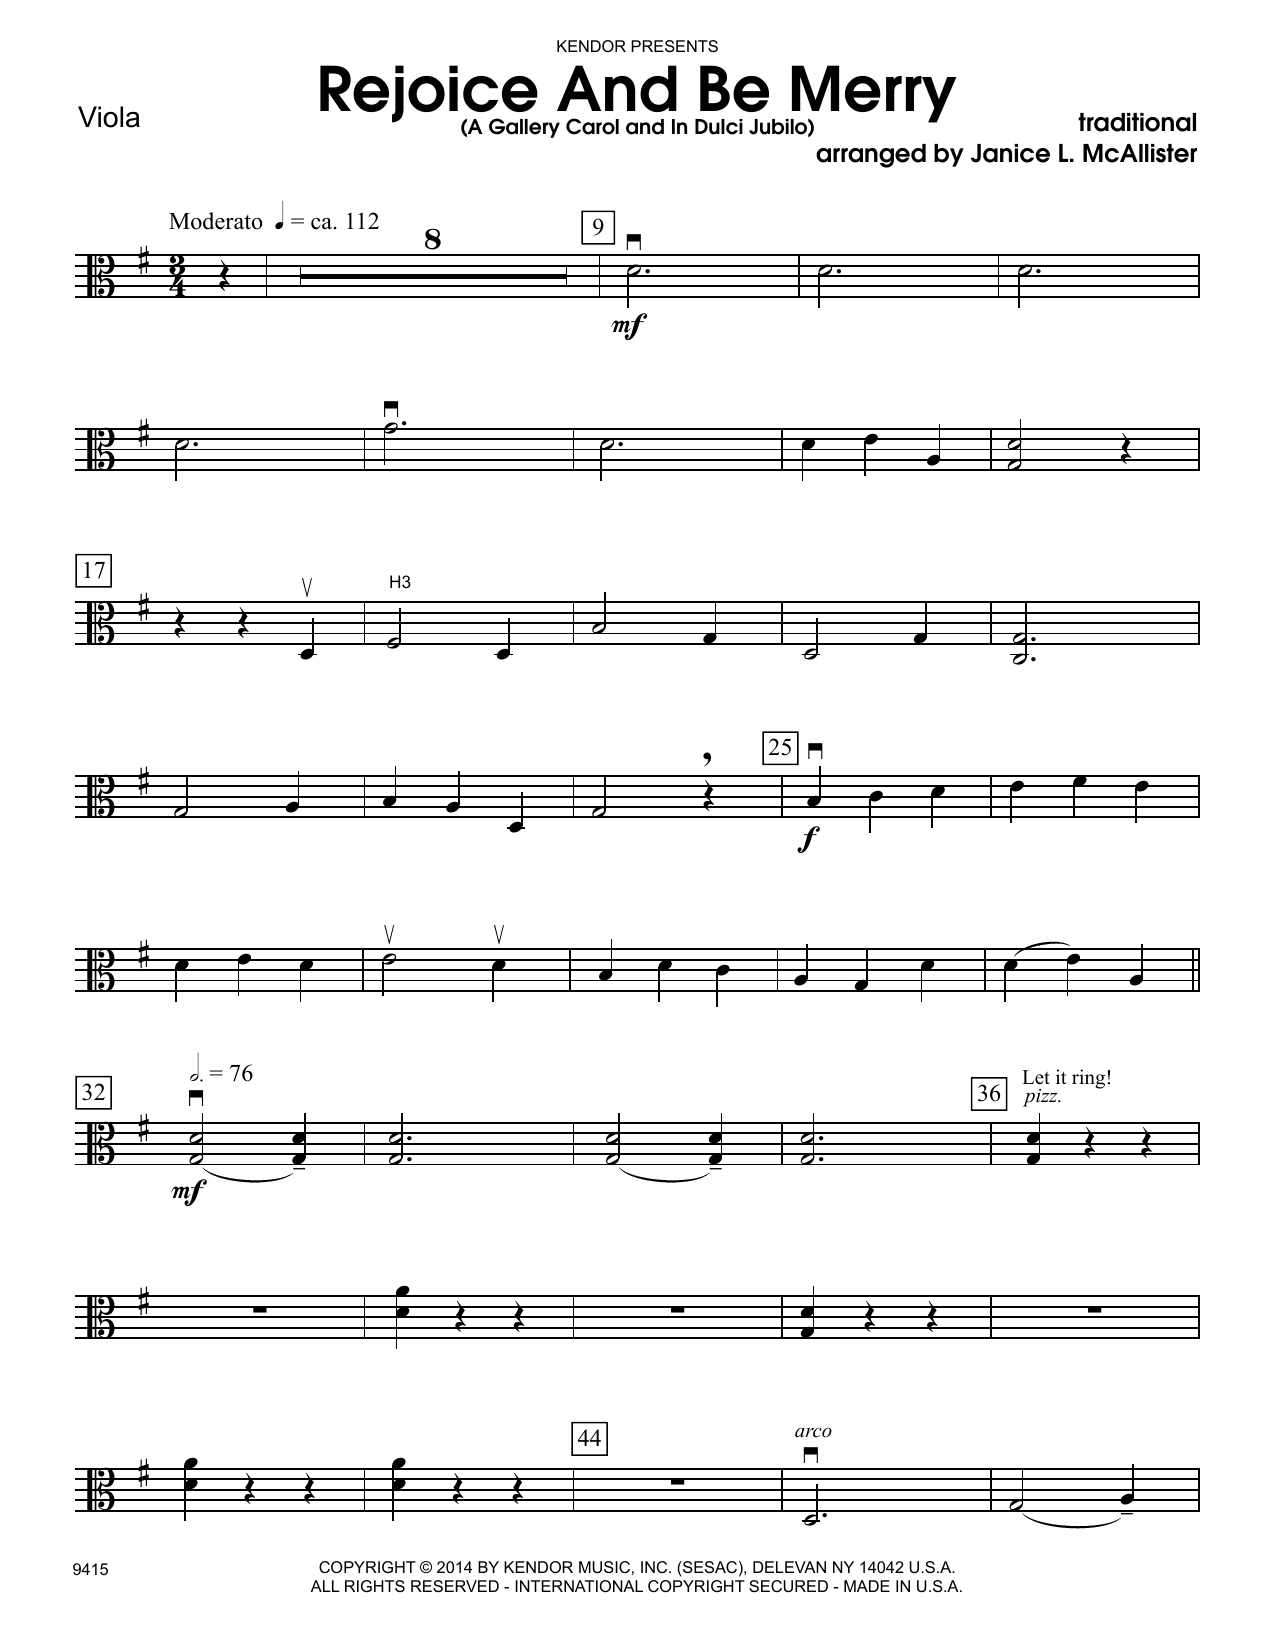 Janice L. McAllister Rejoice And Be Merry (A Gallery Carol and In Dulci Jubilo) - Viola sheet music notes and chords. Download Printable PDF.